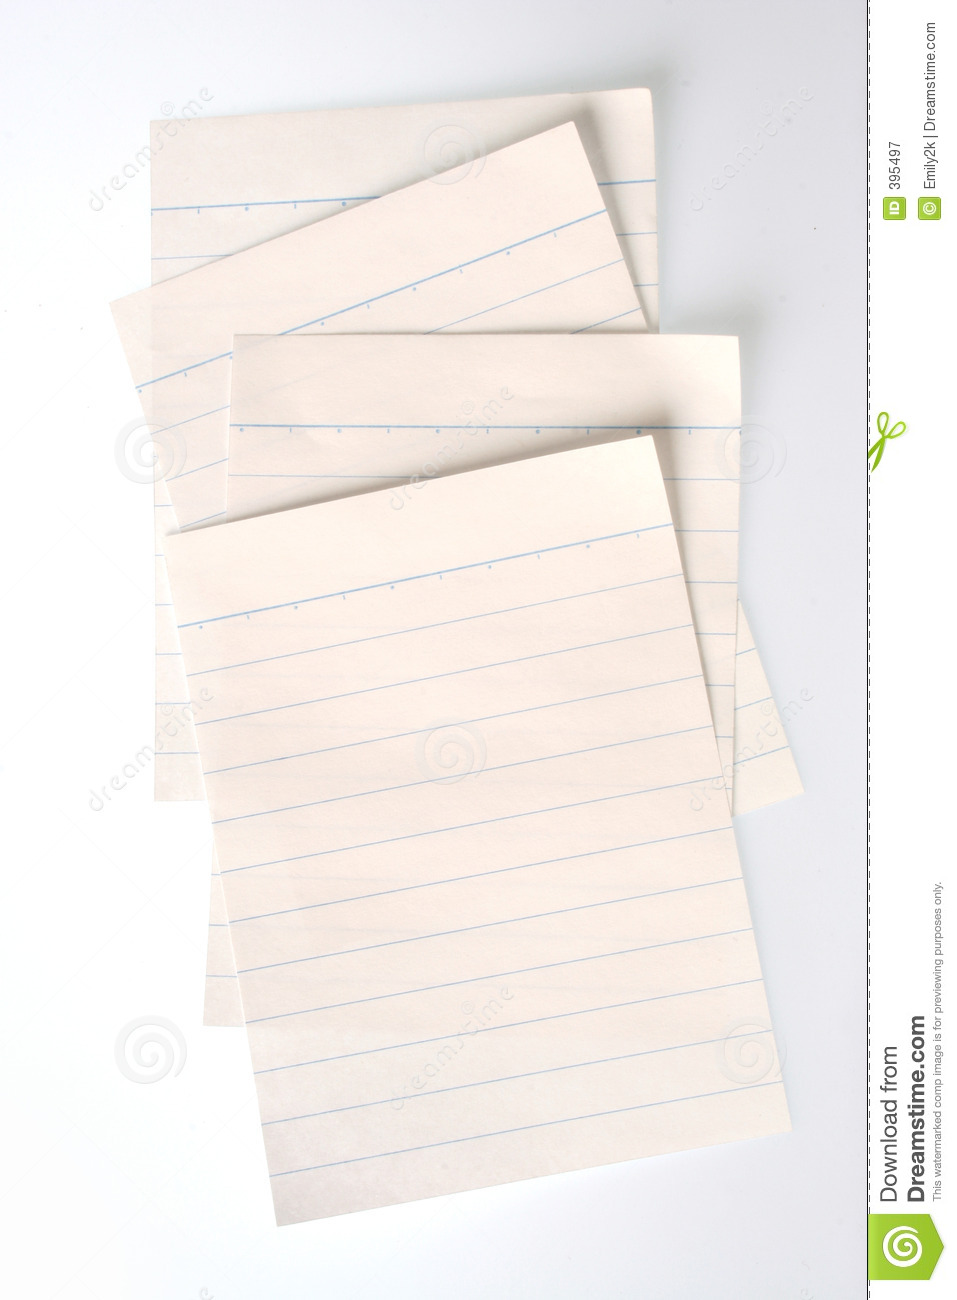 Lined Notebook Paper Lined notebook paper (with